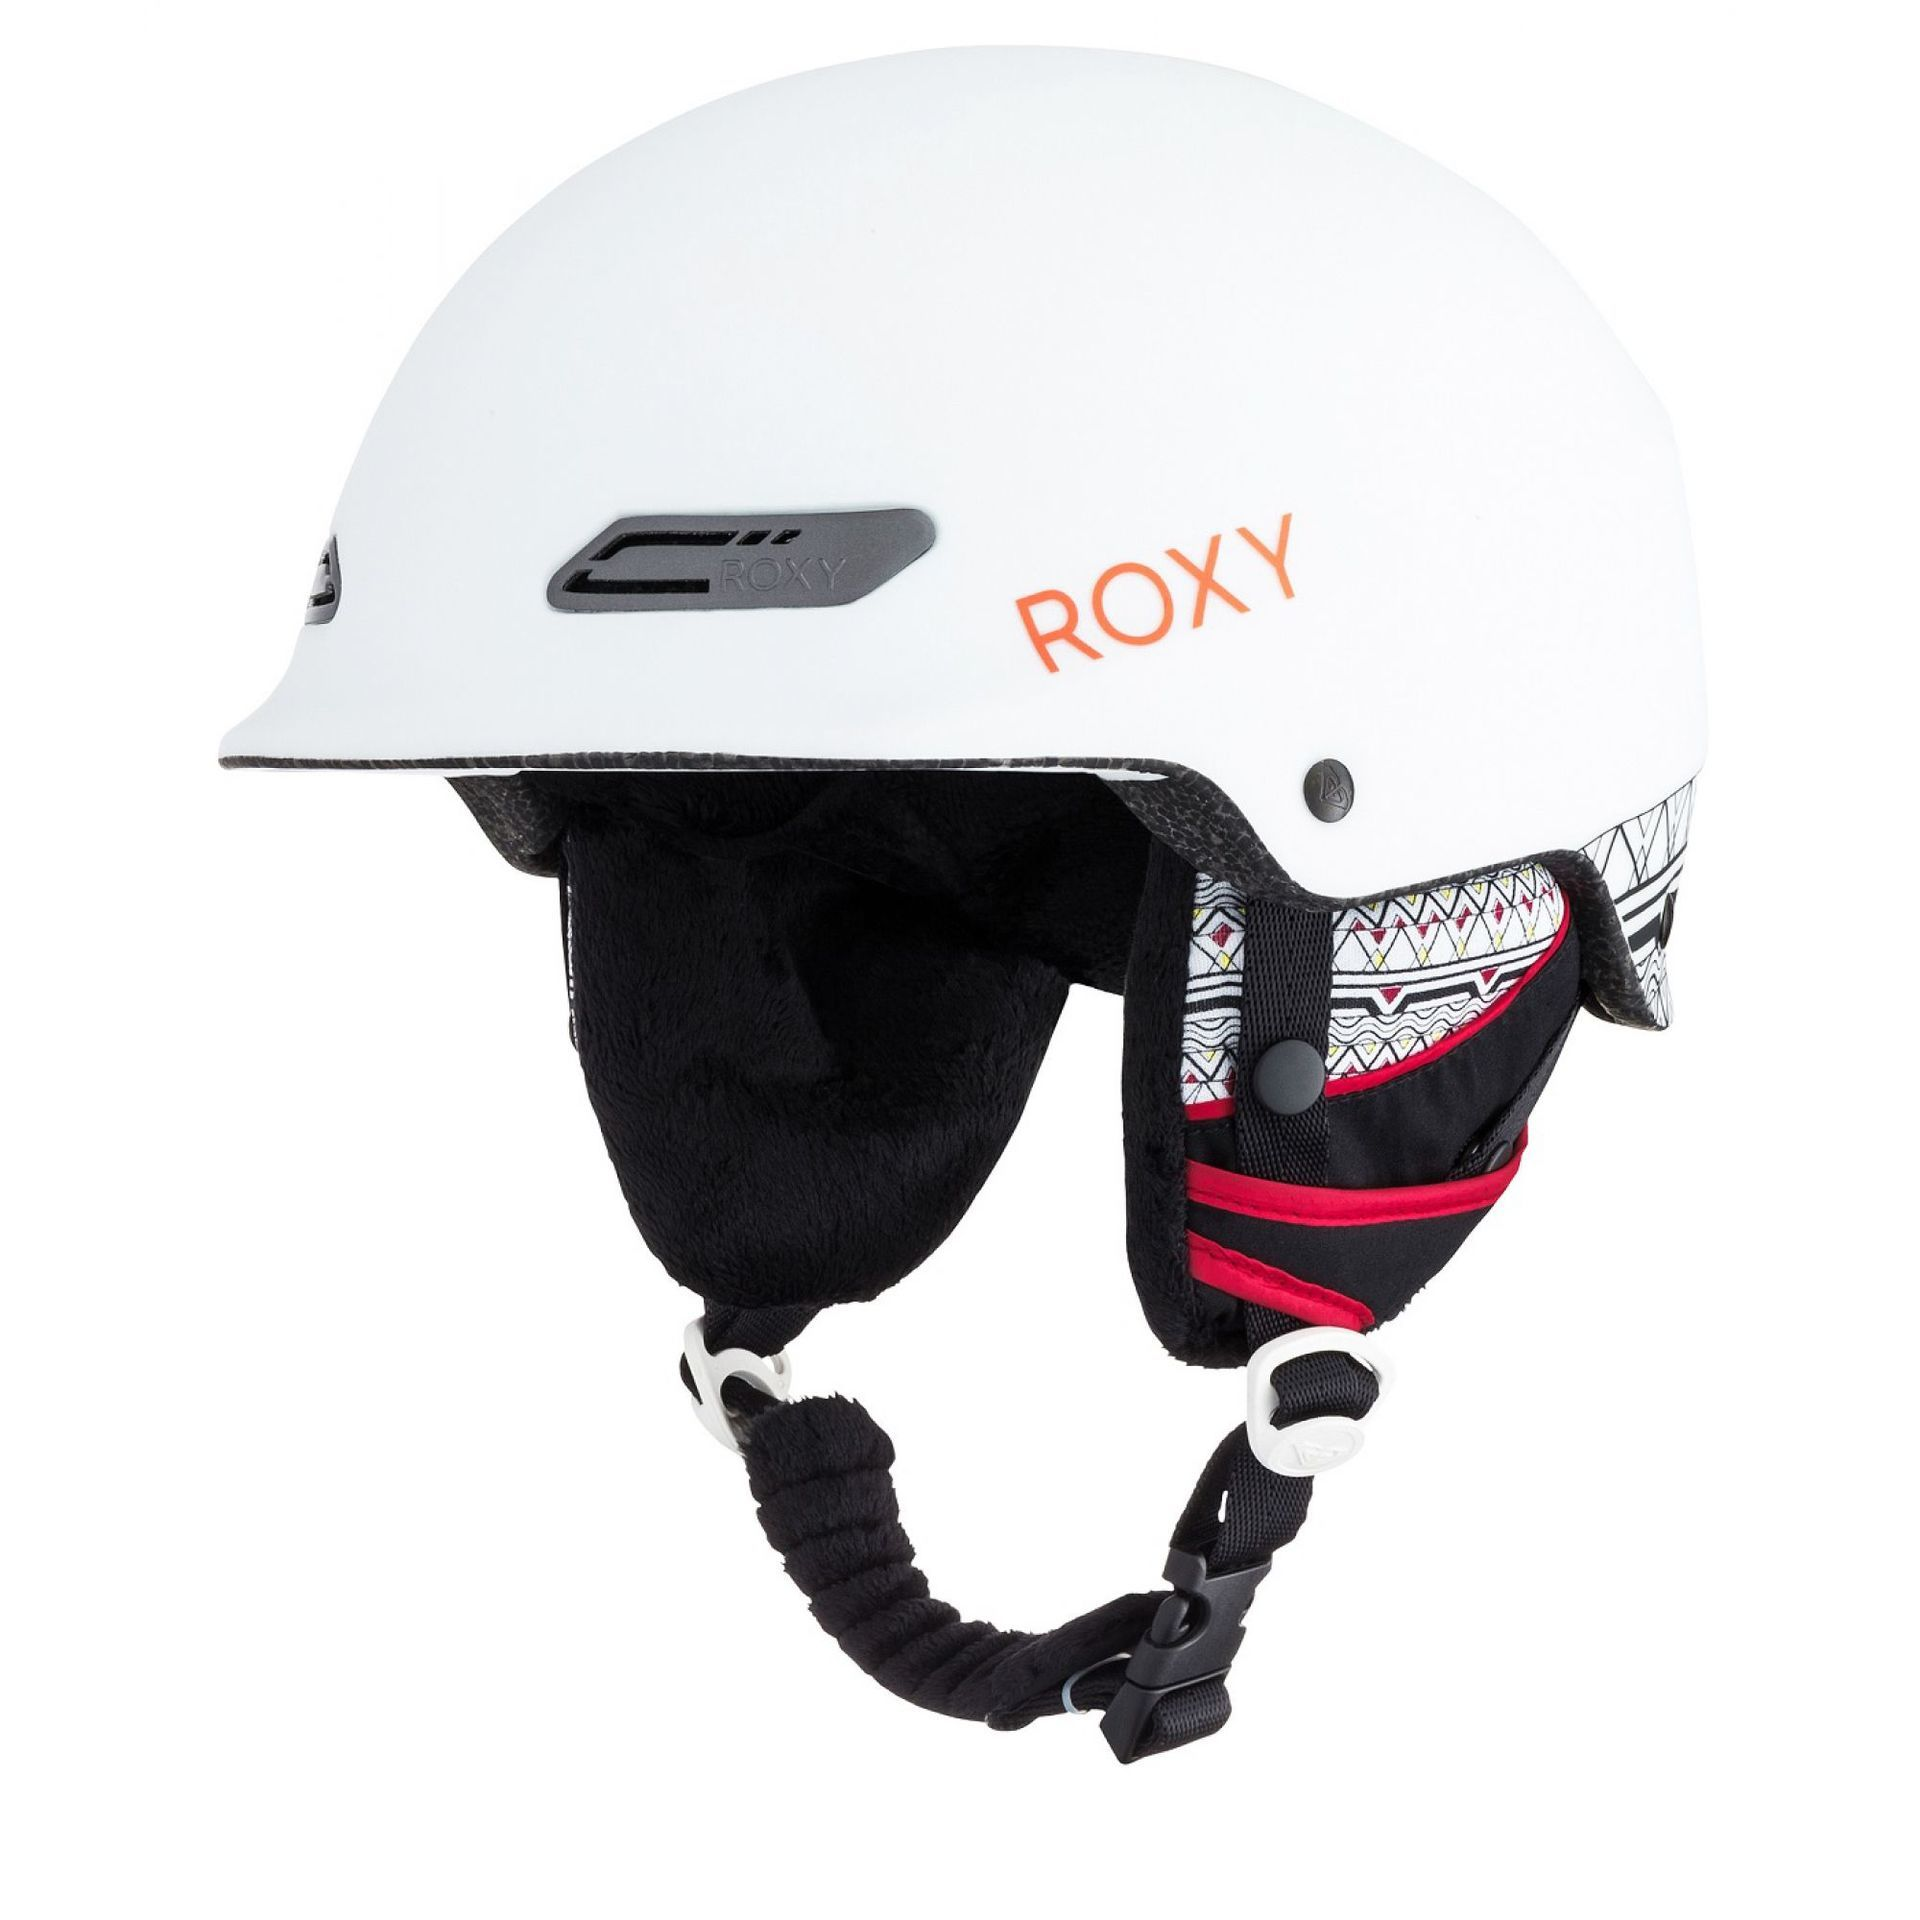 KASK ROXY POWER POWDER BIAŁY